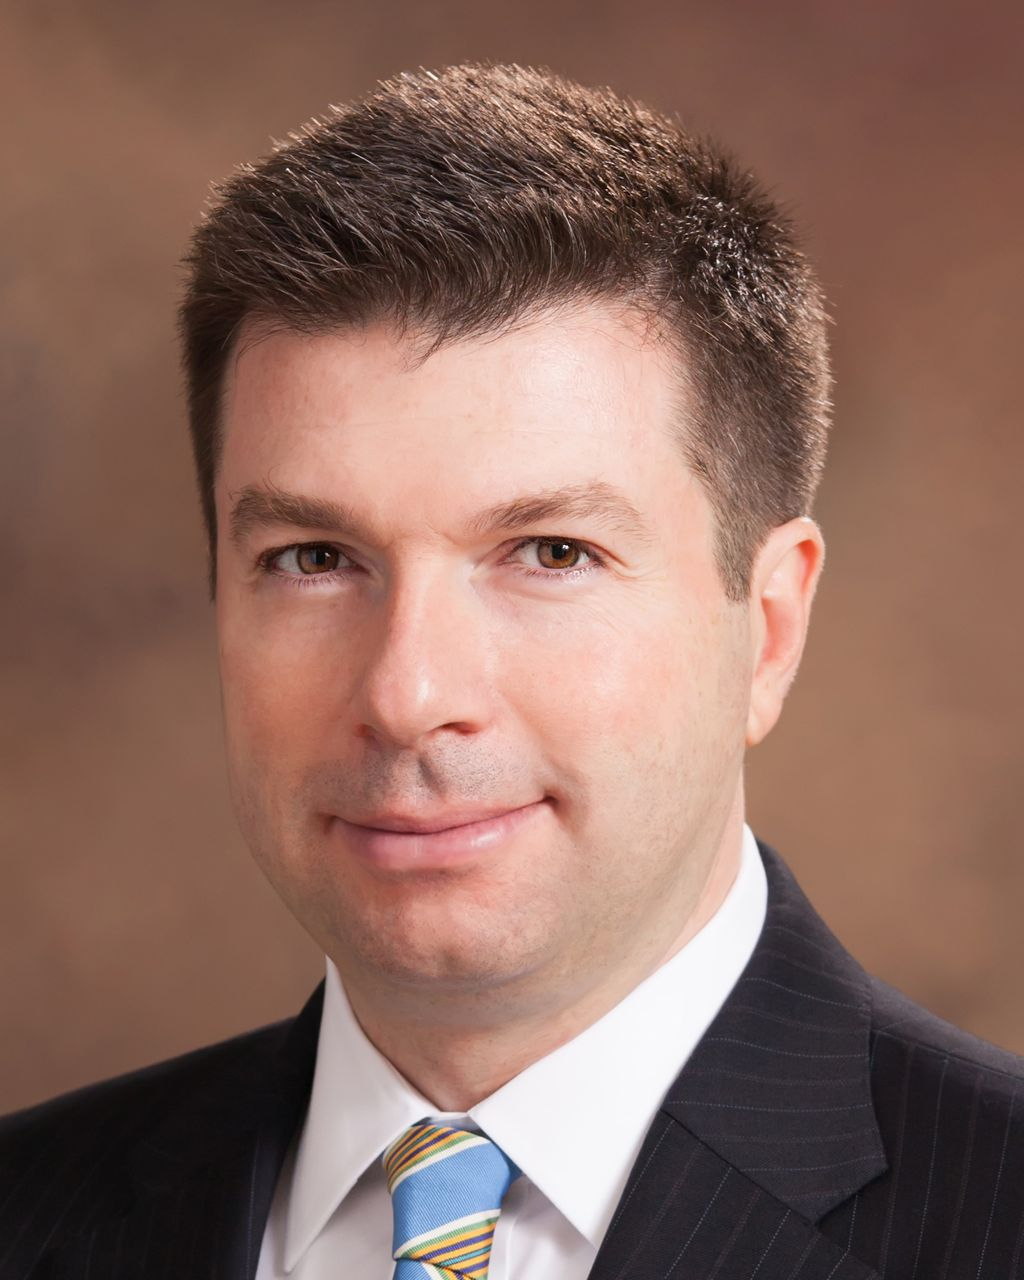 Patrick Cote, financial advisor Natick MA